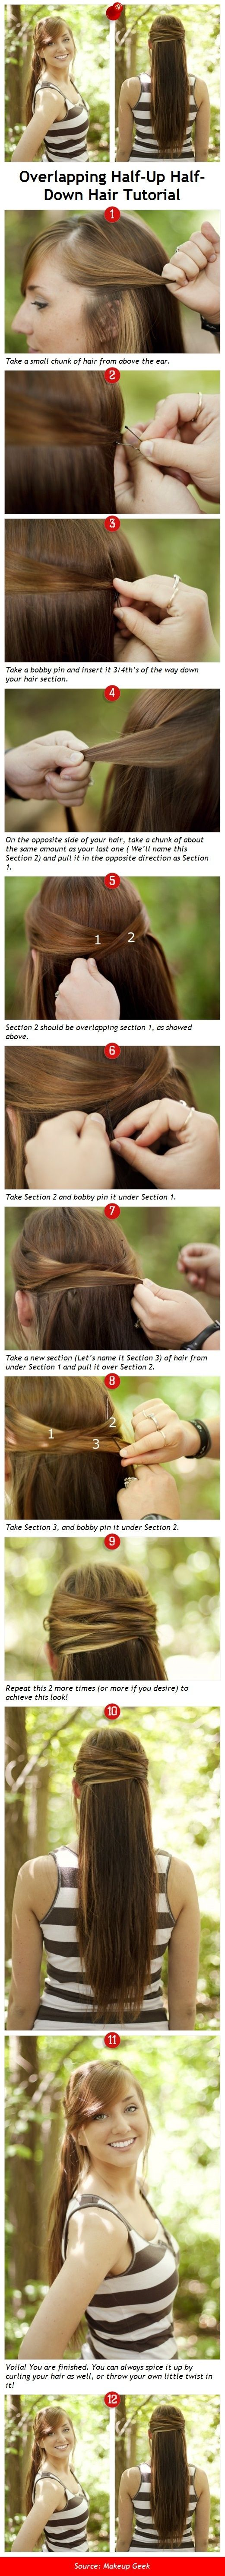 Overlapping Half-Up Half-Down Your hair doesn't have to be long to do this hairstyle.